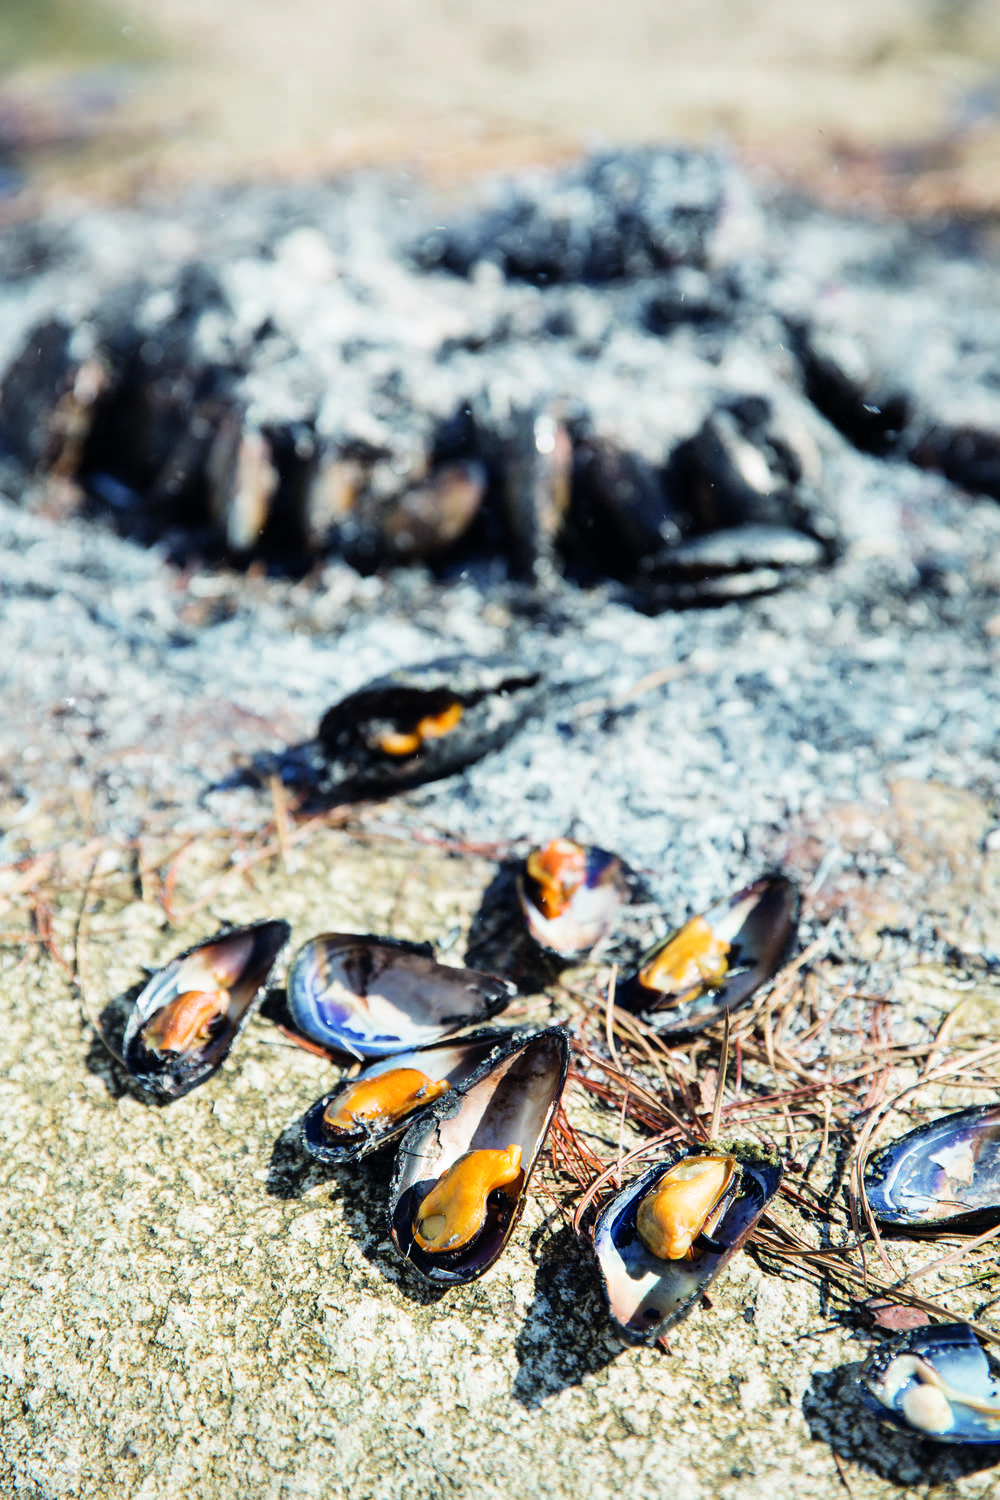 Pine-needle mussels